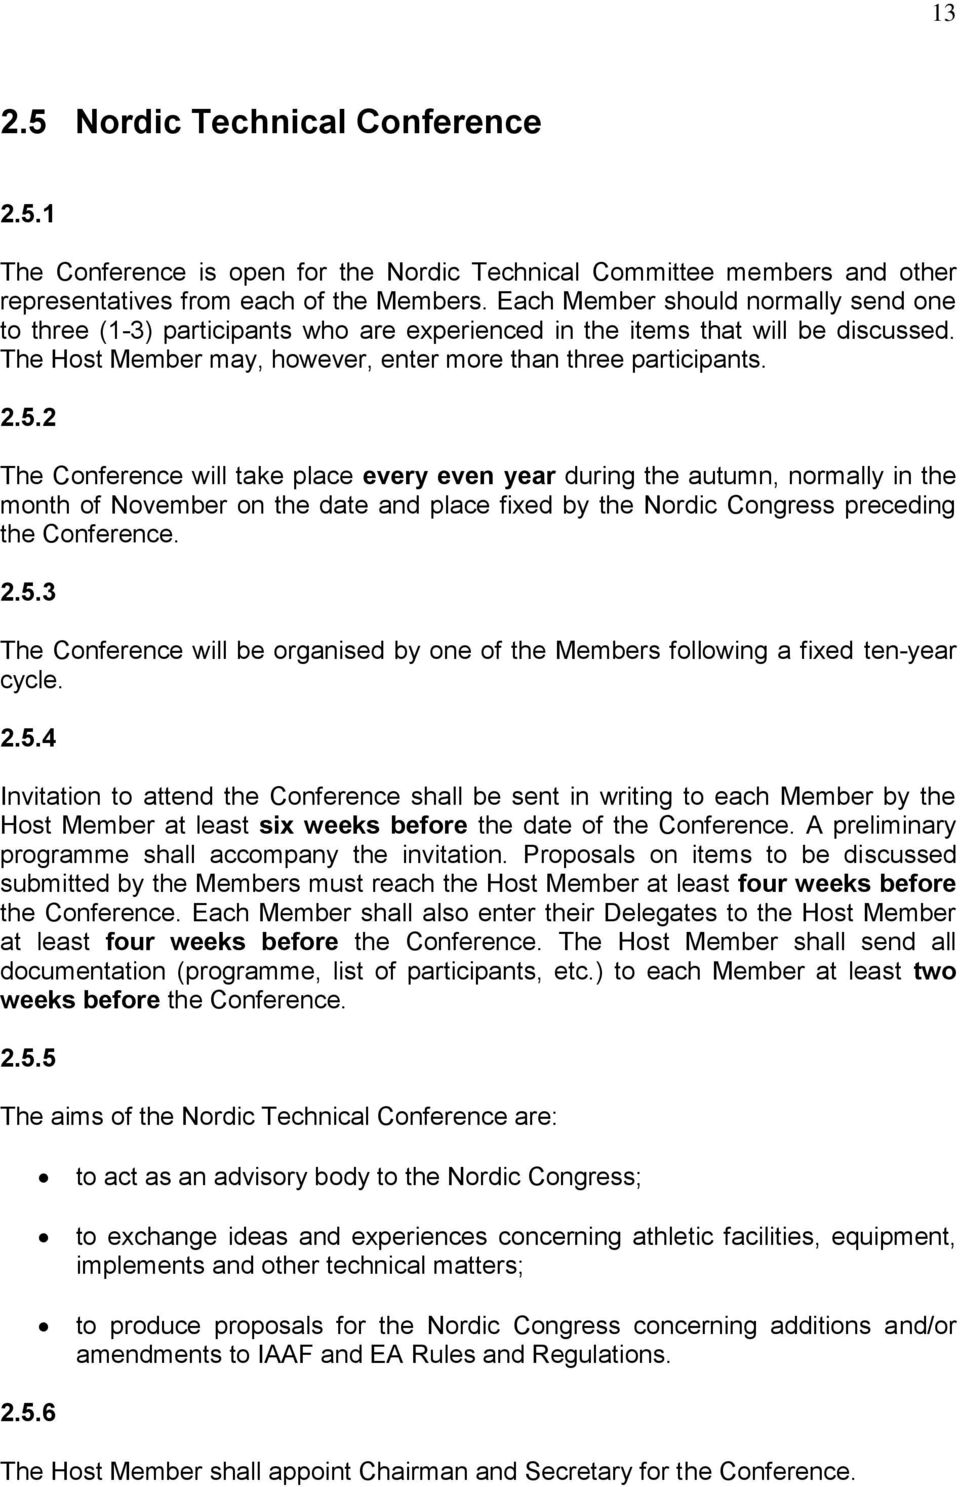 2 The Conference will take place every even year during the autumn, normally in the month of November on the date and place fixed by the Nordic Congress preceding the Conference. 2.5.